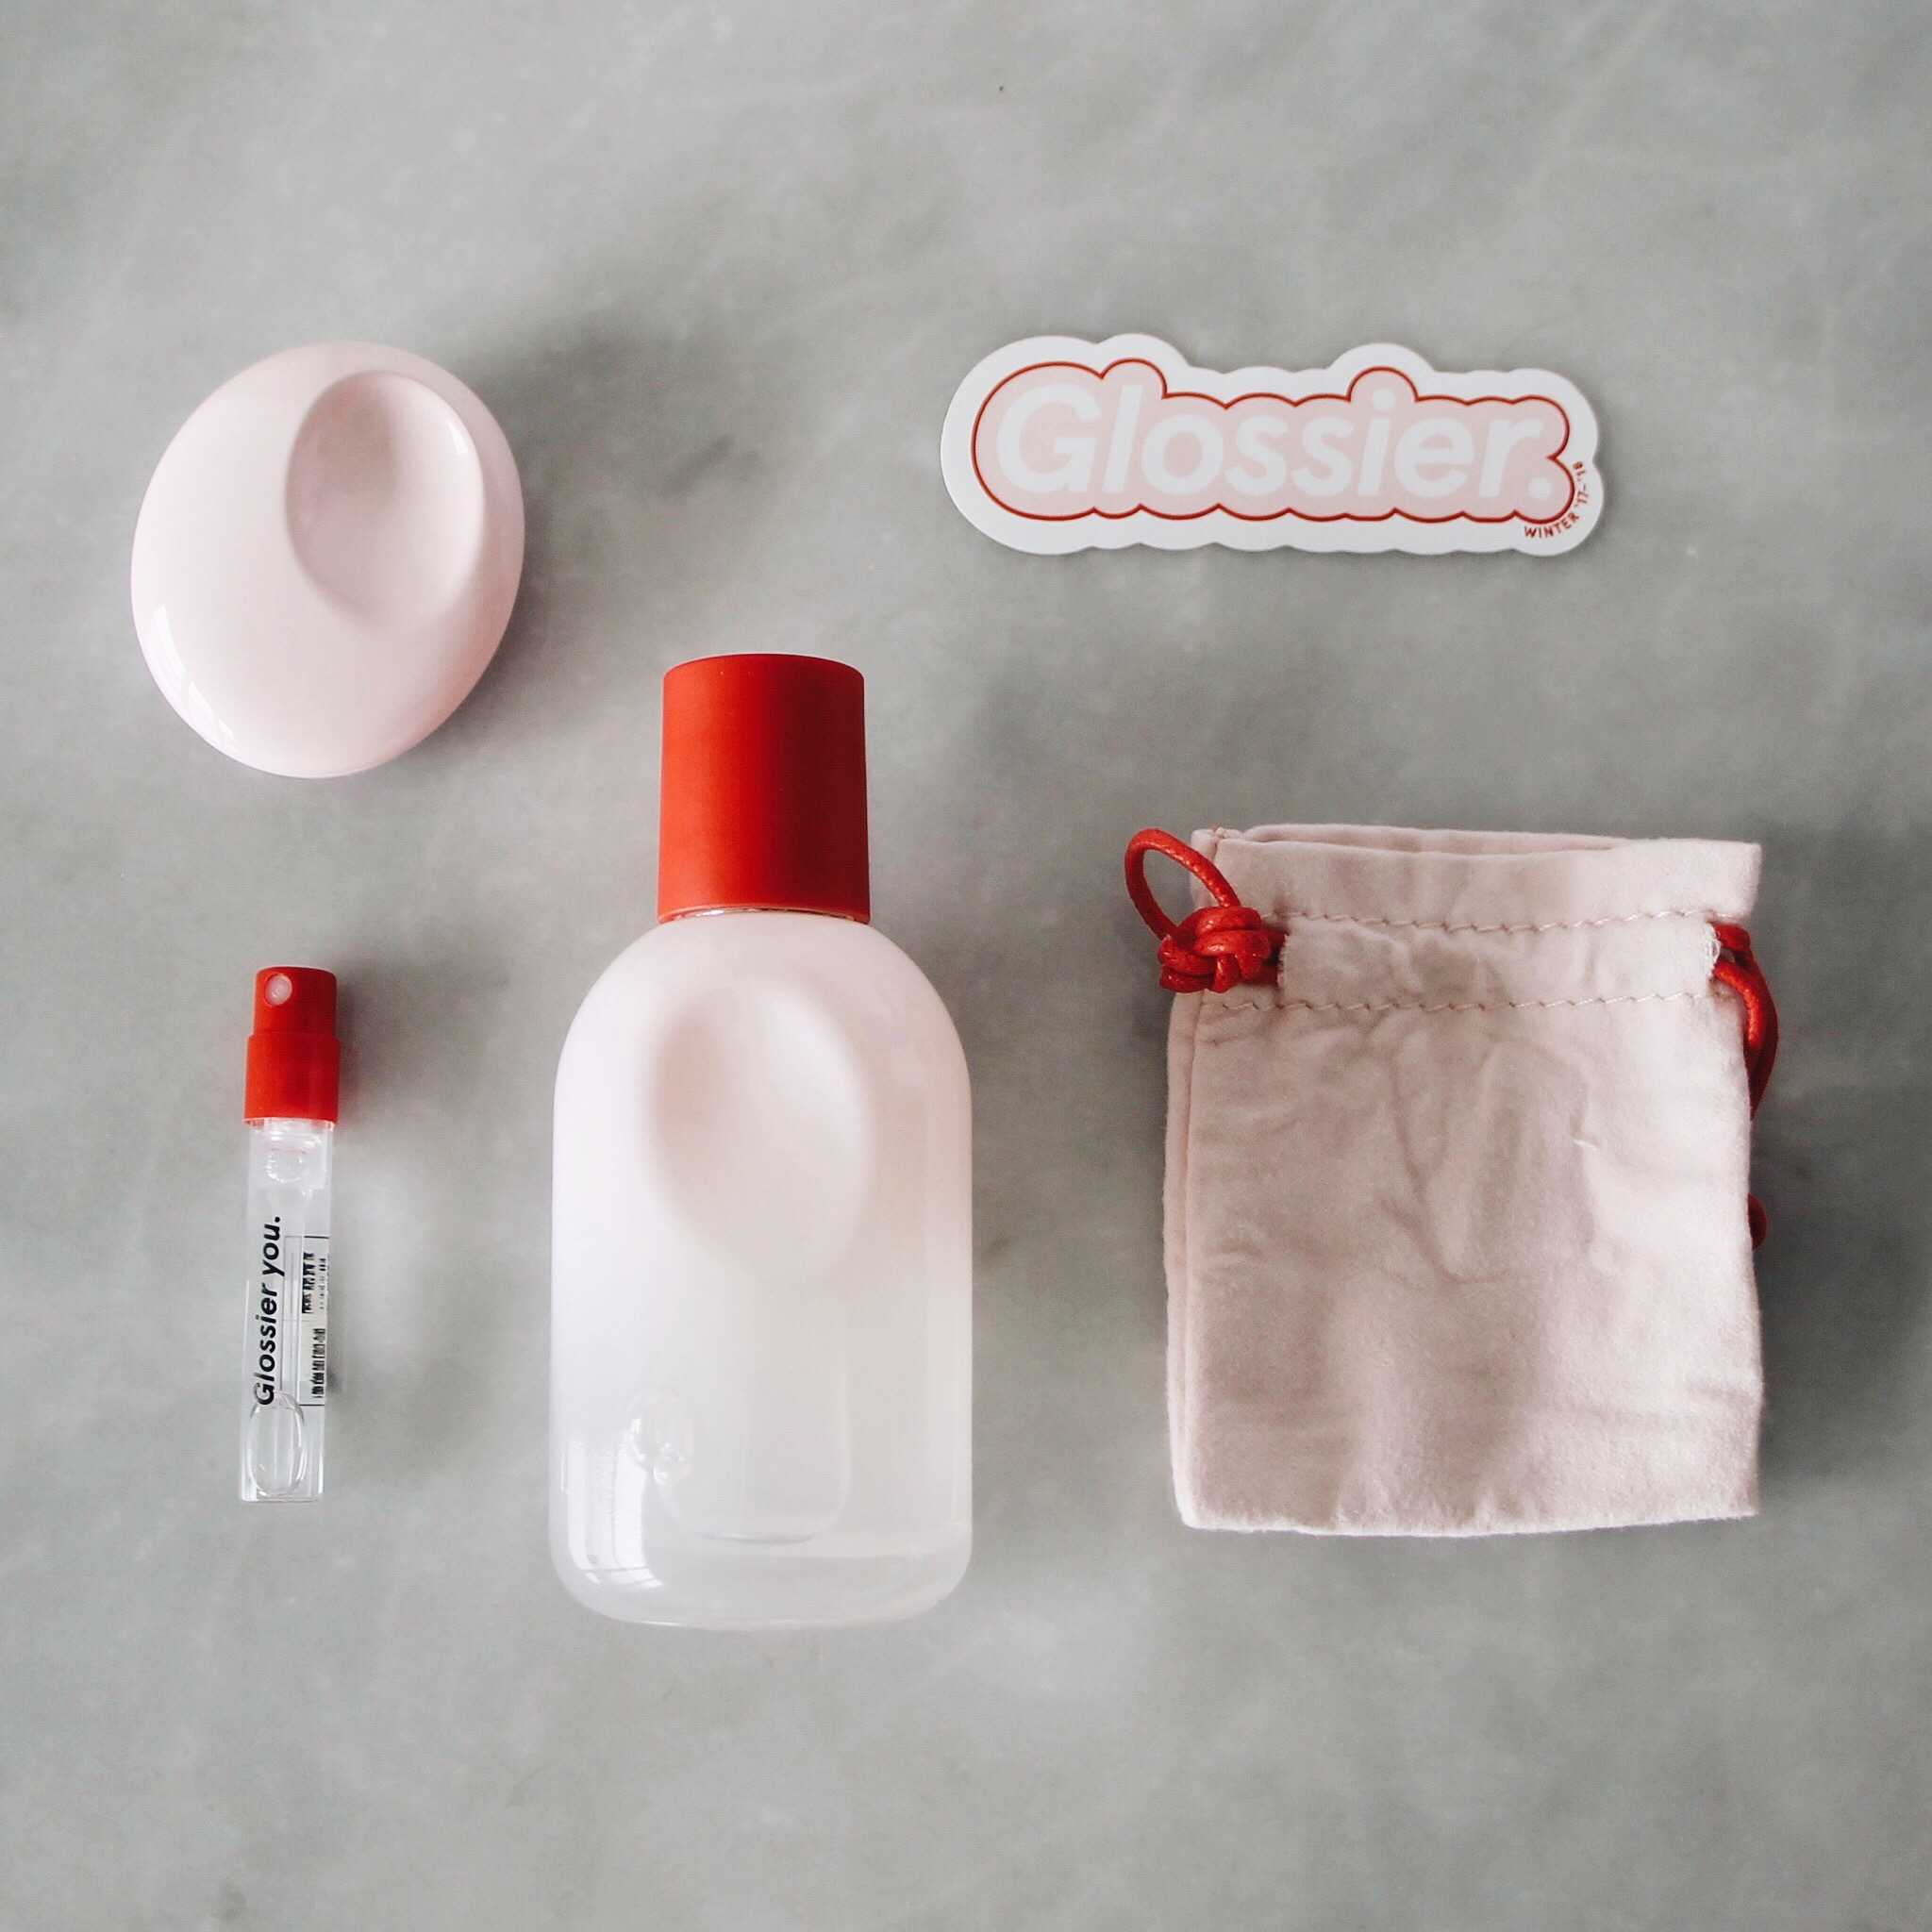 Glossier You Perfume, Sample and Perfume Solid, Glossier You Sample, Glossier Sample, Glossier Discount, Glossier You Perfume Solid, Glossier You Travel Perfume, Glossier You Eau De Parfum